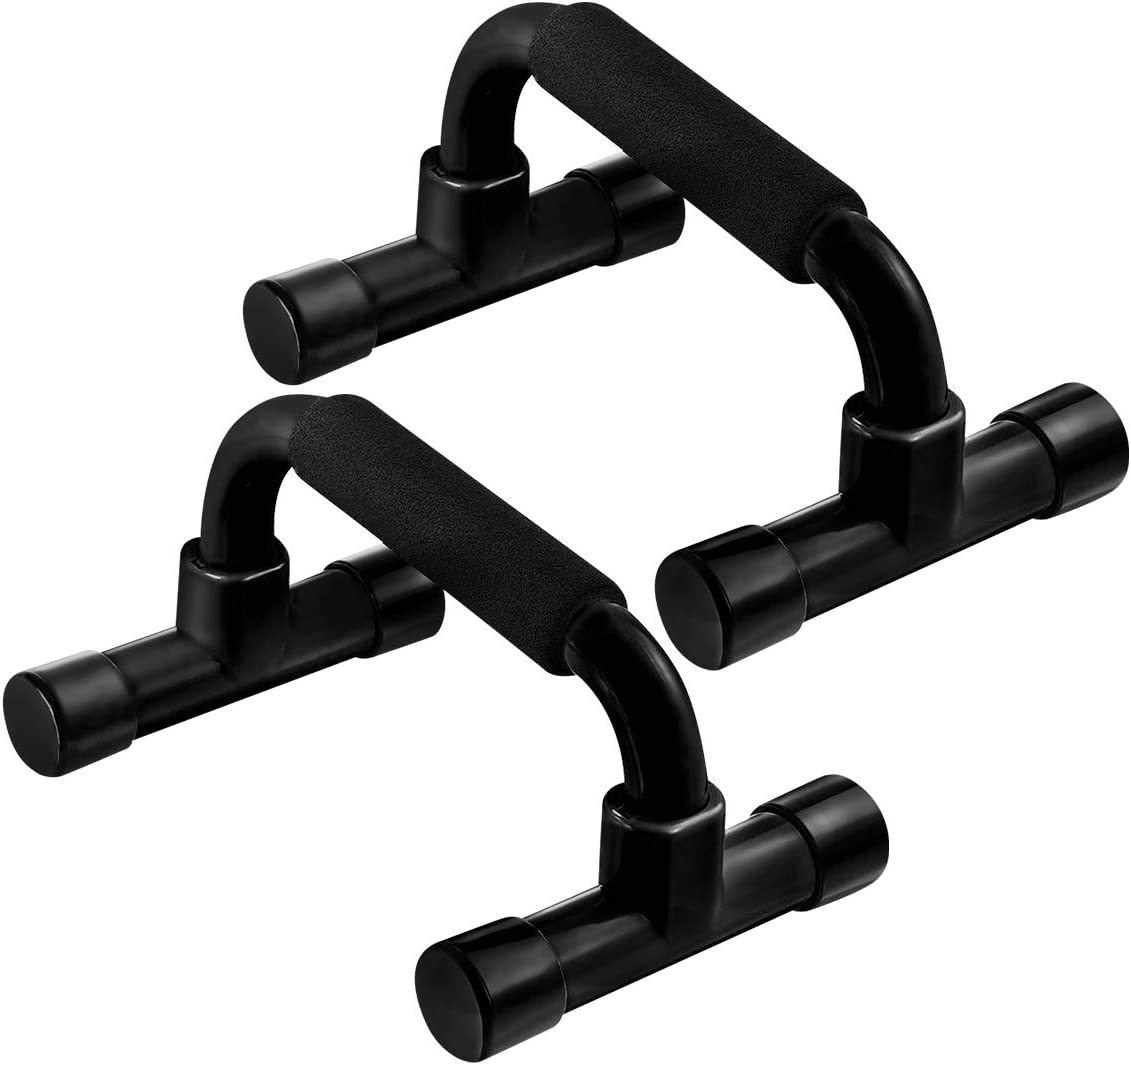 SOONHUA Push-up I-Shaped Bracket Push Up Bars Pushup Handle with Cushioned Grip Home Workout Fitness Equipment